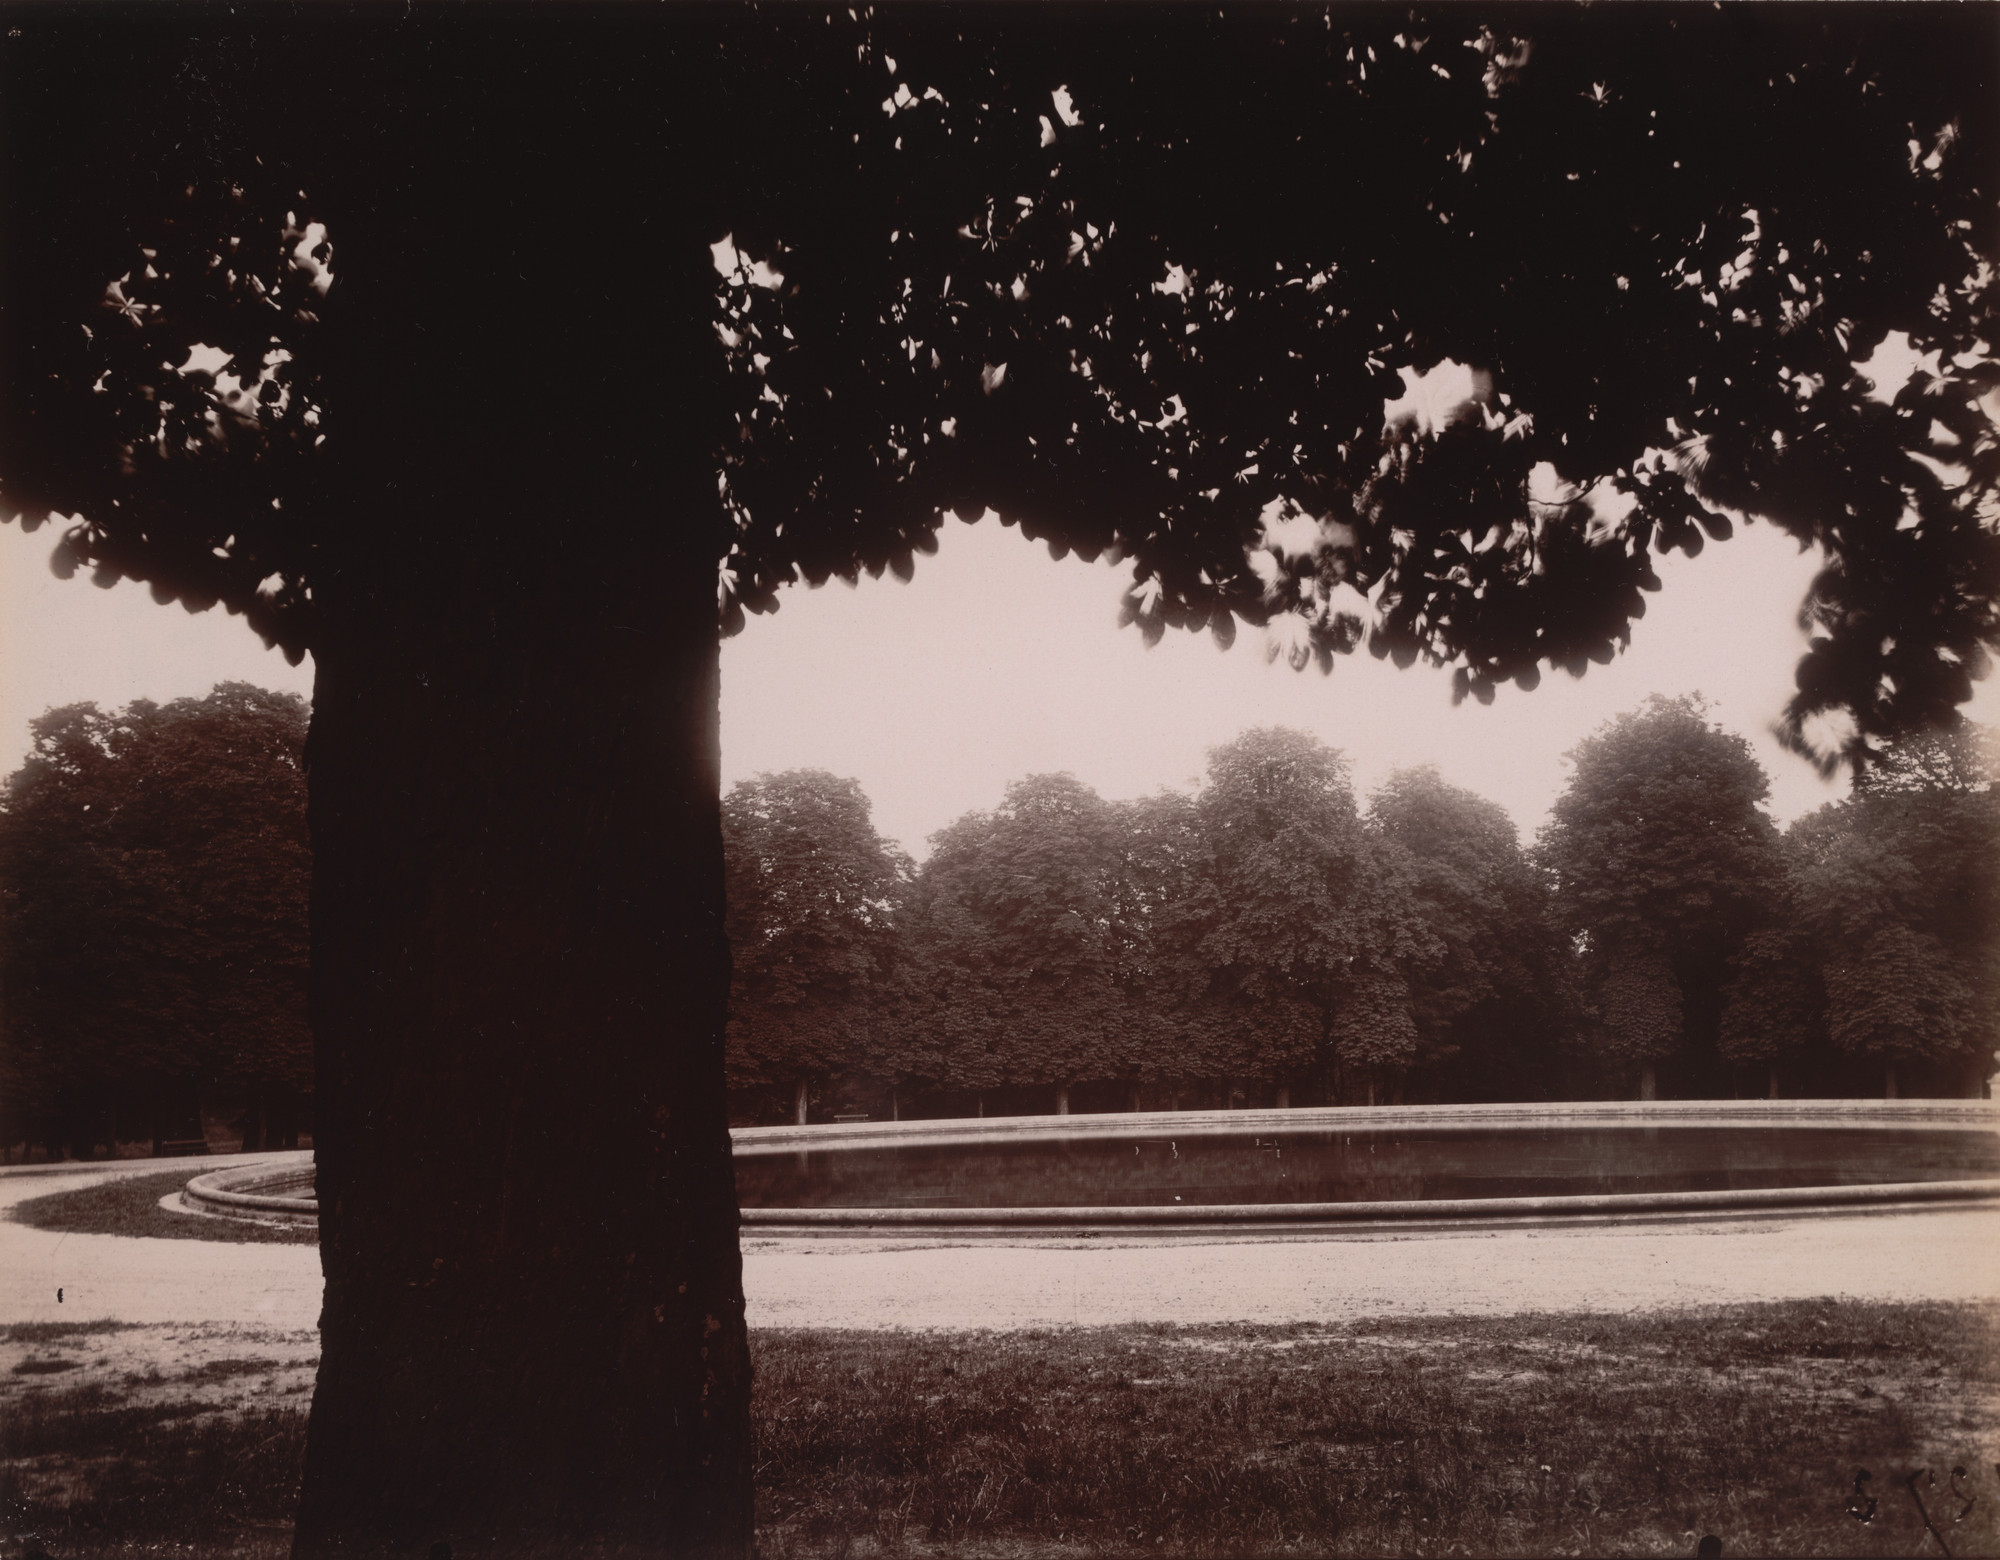 Eugène Atget. Saint-Cloud. June 1926